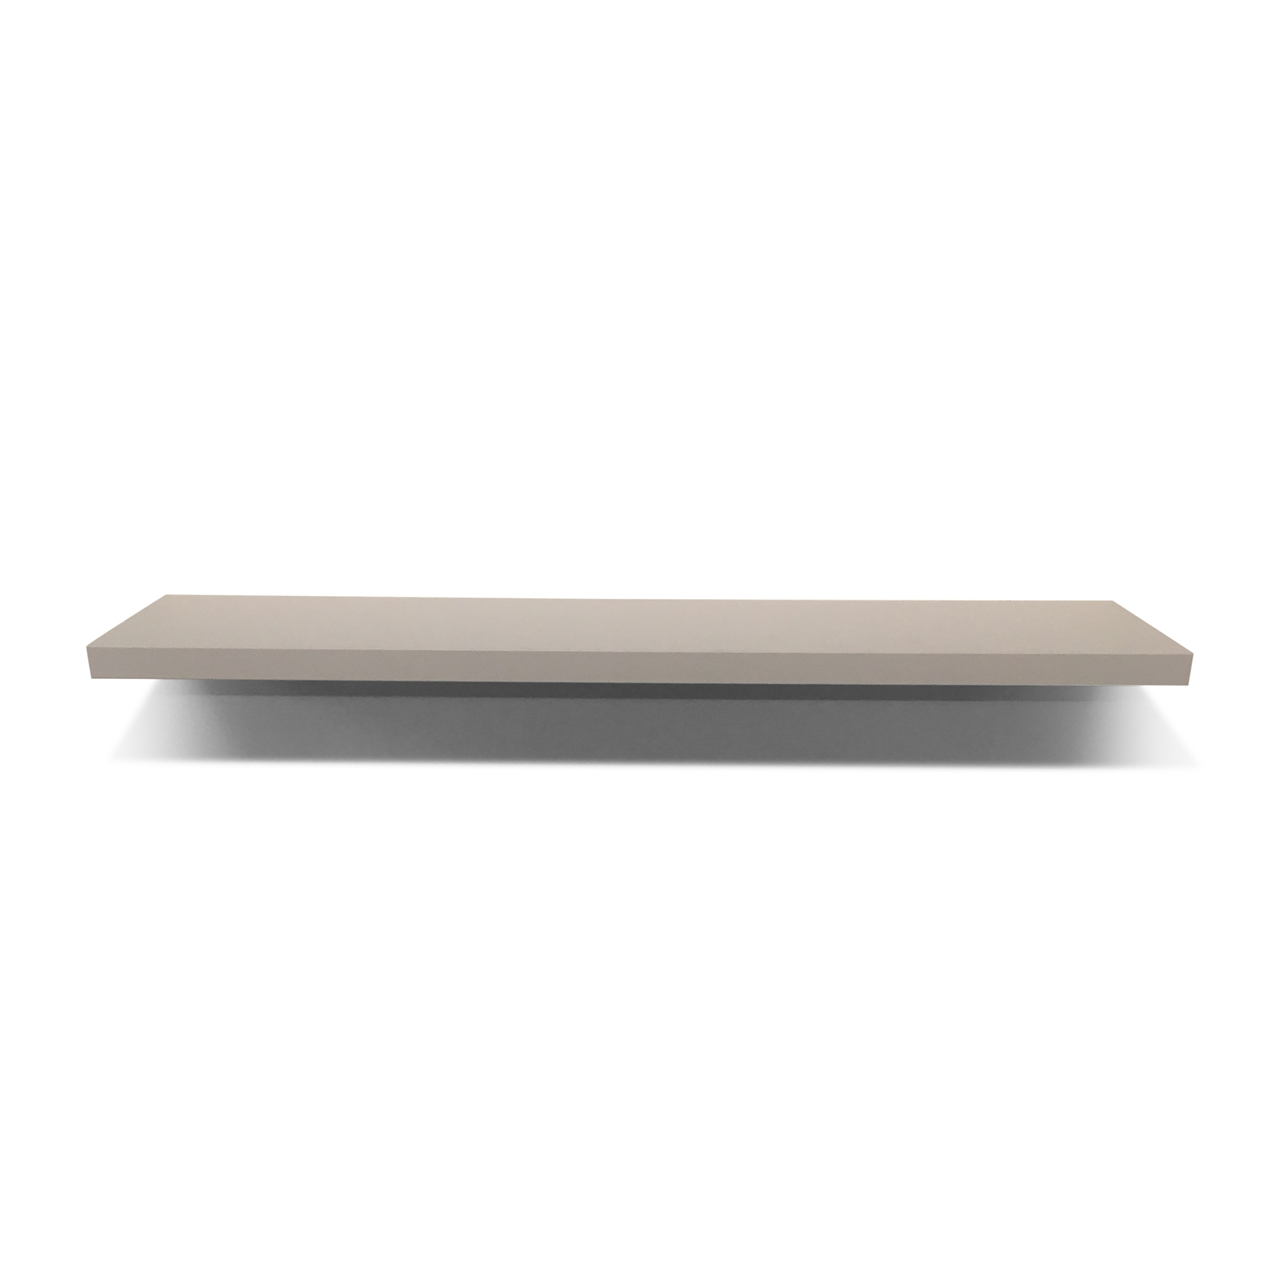 top shelf gallery floating depth thick deep long dove grey laminated click here order lighted glass bar shelves standard bookcase width will command hooks work brick bench ikea